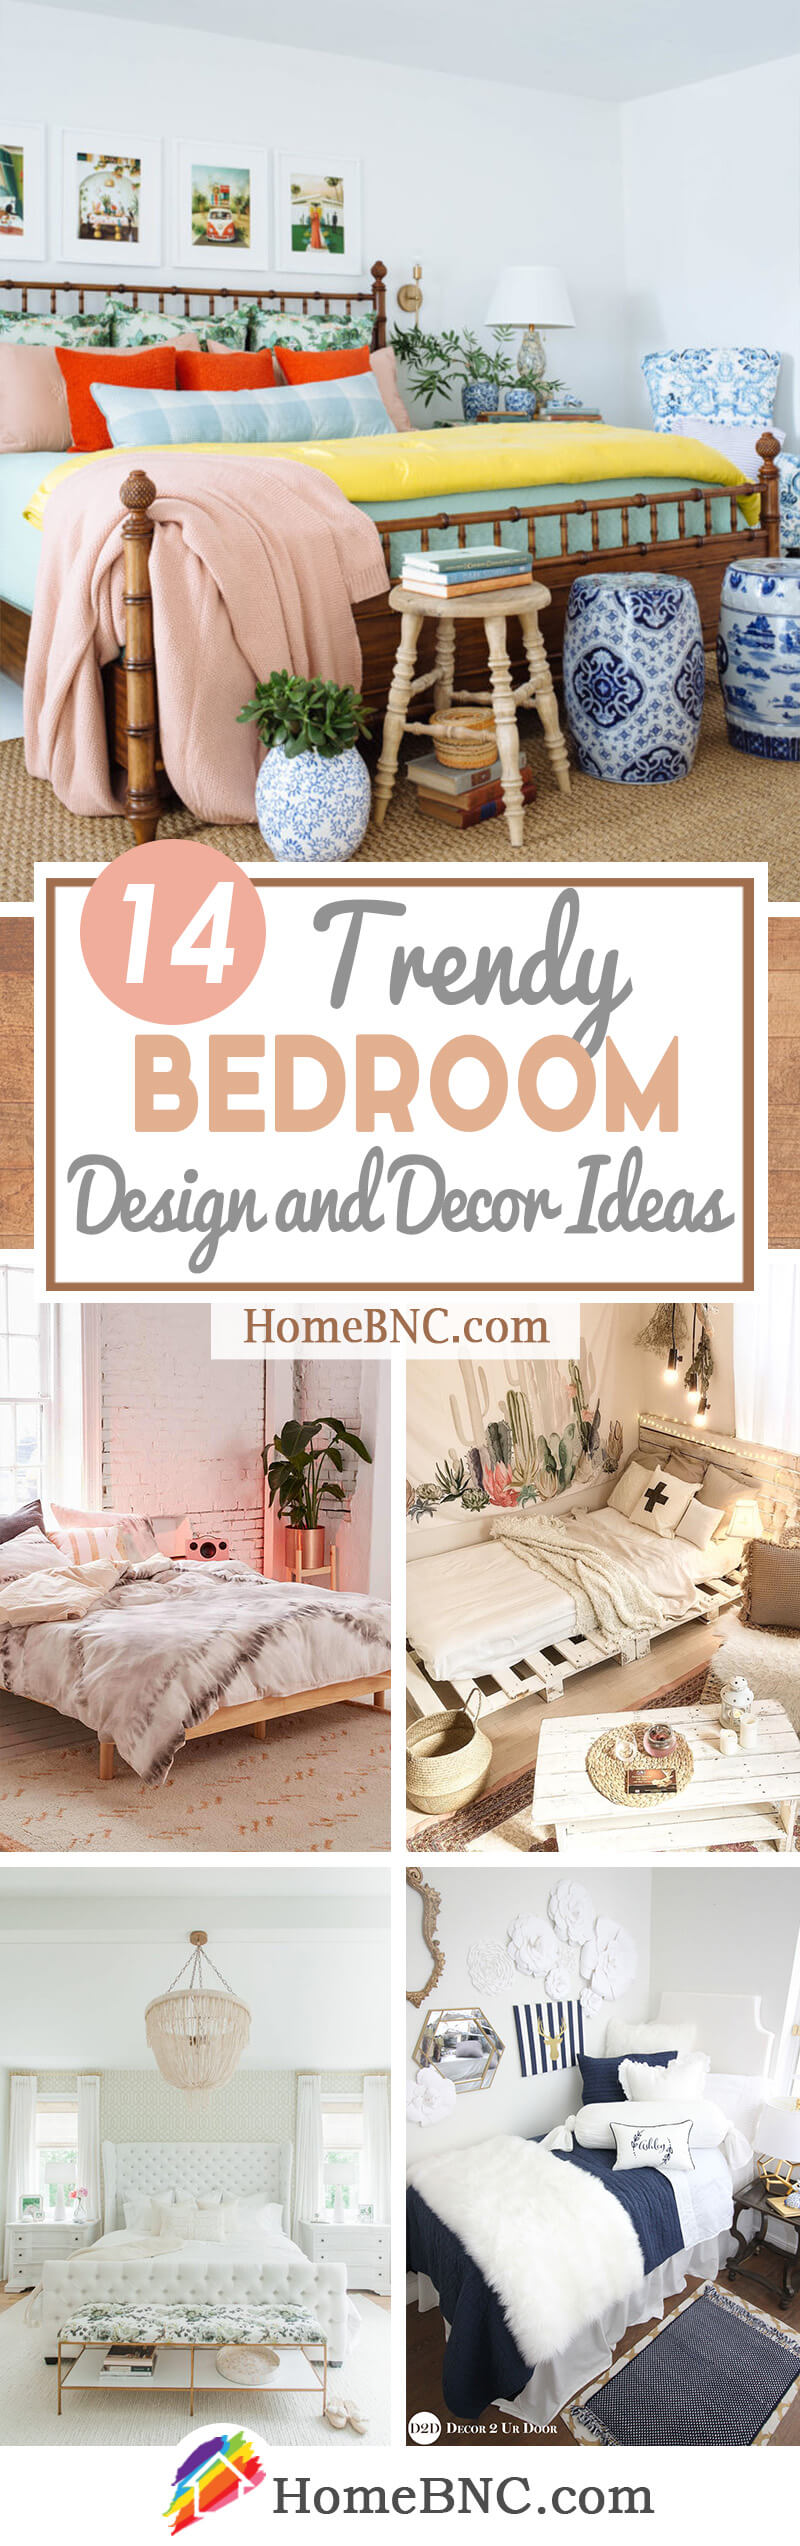 14 Best Trendy Bedroom Decor and Design Ideas for 2018 Ideas For Bedroom Decor on diy for bedrooms, travel ideas for bedrooms, themes for bedrooms, inspiration for bedrooms, fashion for bedrooms, decorating small bedrooms, design for bedrooms, sports ideas for bedrooms, pinterest for bedrooms, makeup ideas for bedrooms, fun ideas for bedrooms, vintage ideas for bedrooms, office ideas for bedrooms, art for bedrooms, cute ideas for bedrooms, good ideas for bedrooms, modern ideas for bedrooms, wall decor for bedrooms, organization ideas for bedrooms, remodel ideas for bedrooms,